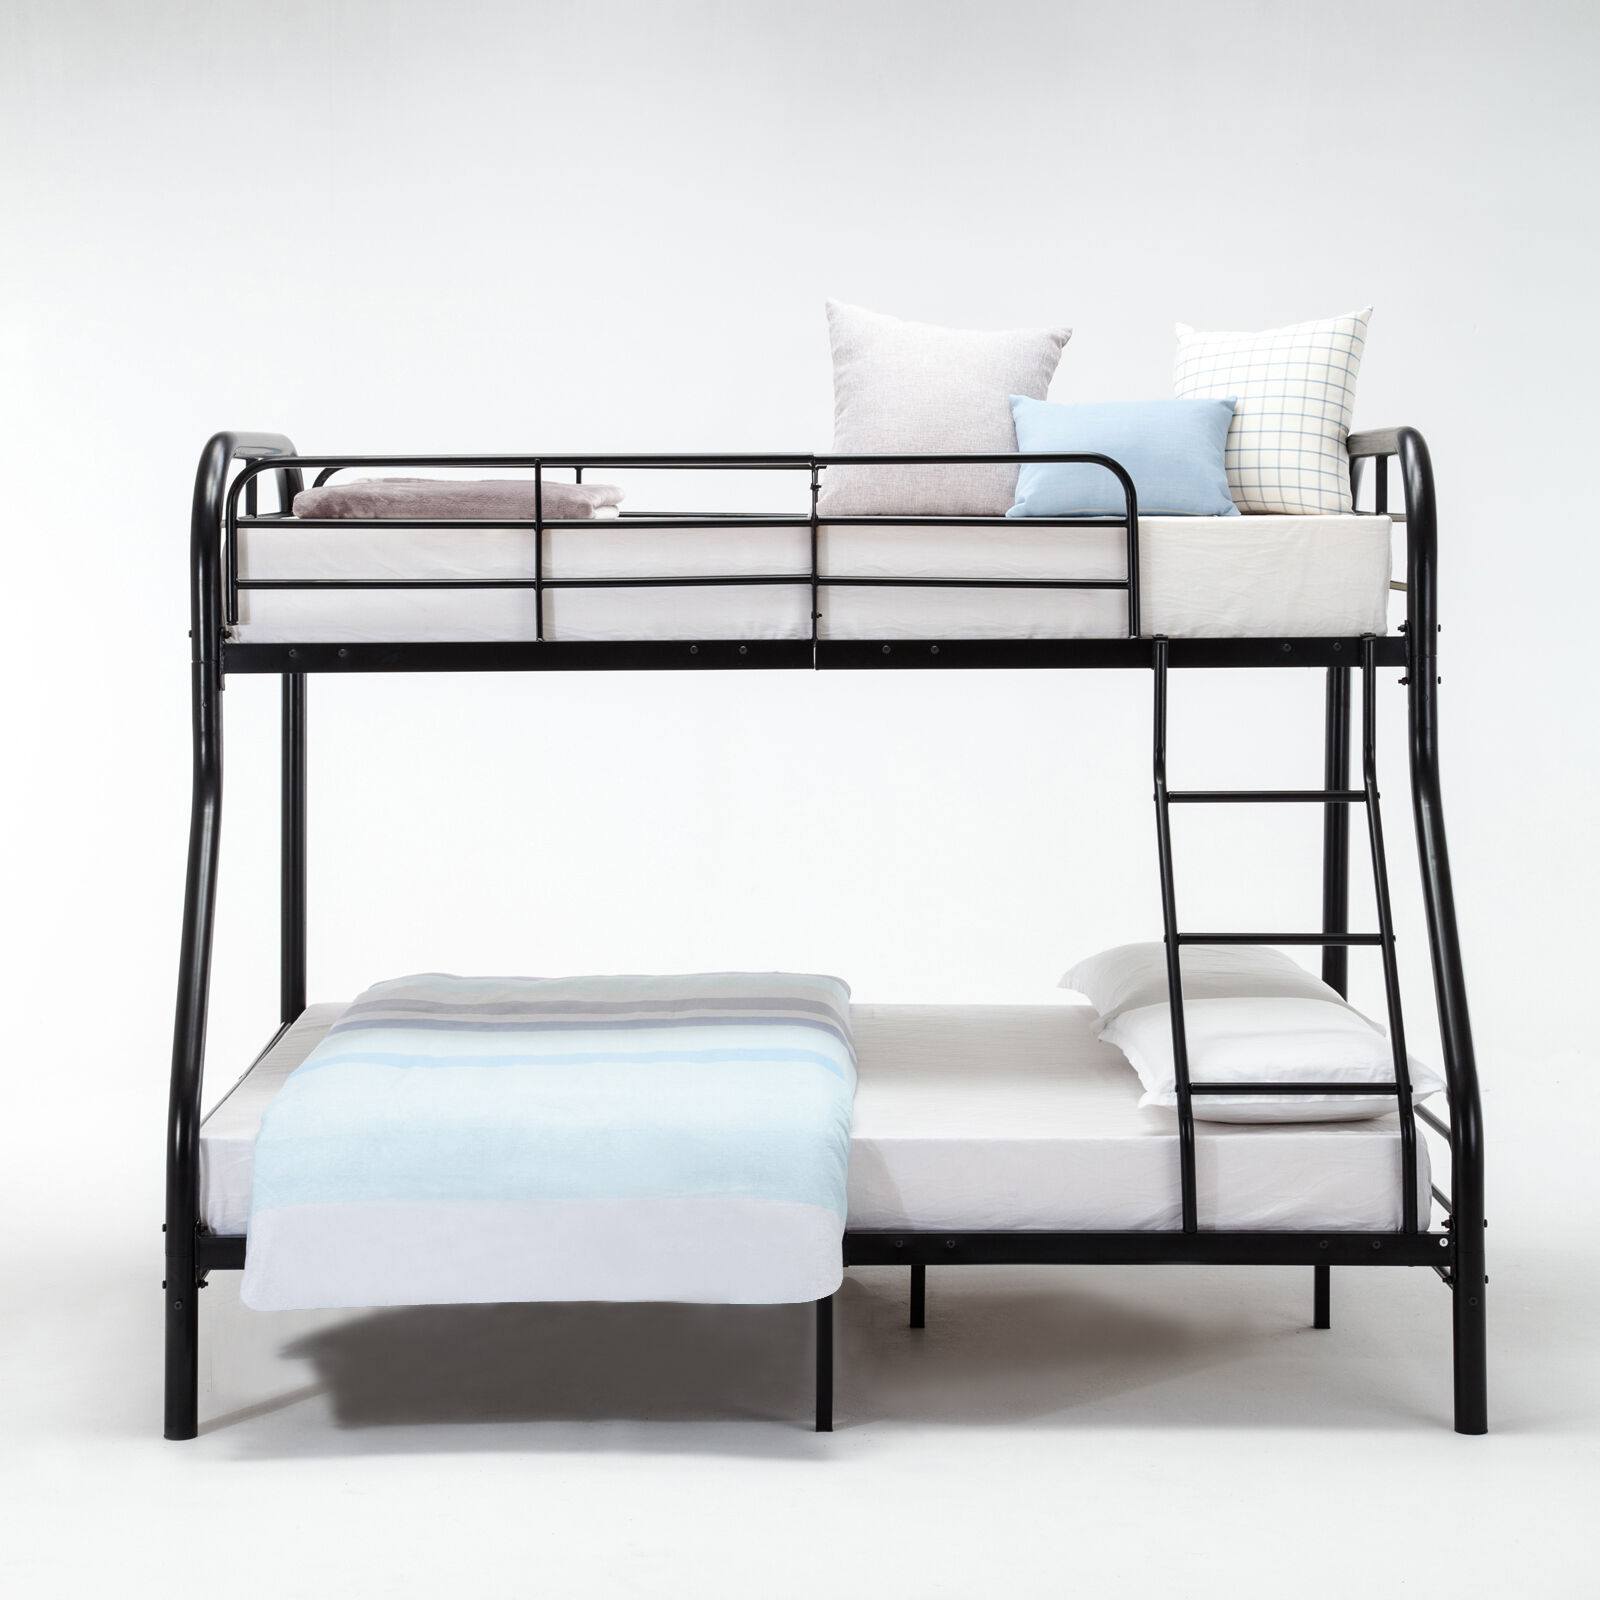 Metal Twin Over Full Bunk Beds Framew Ladder Adult Kid